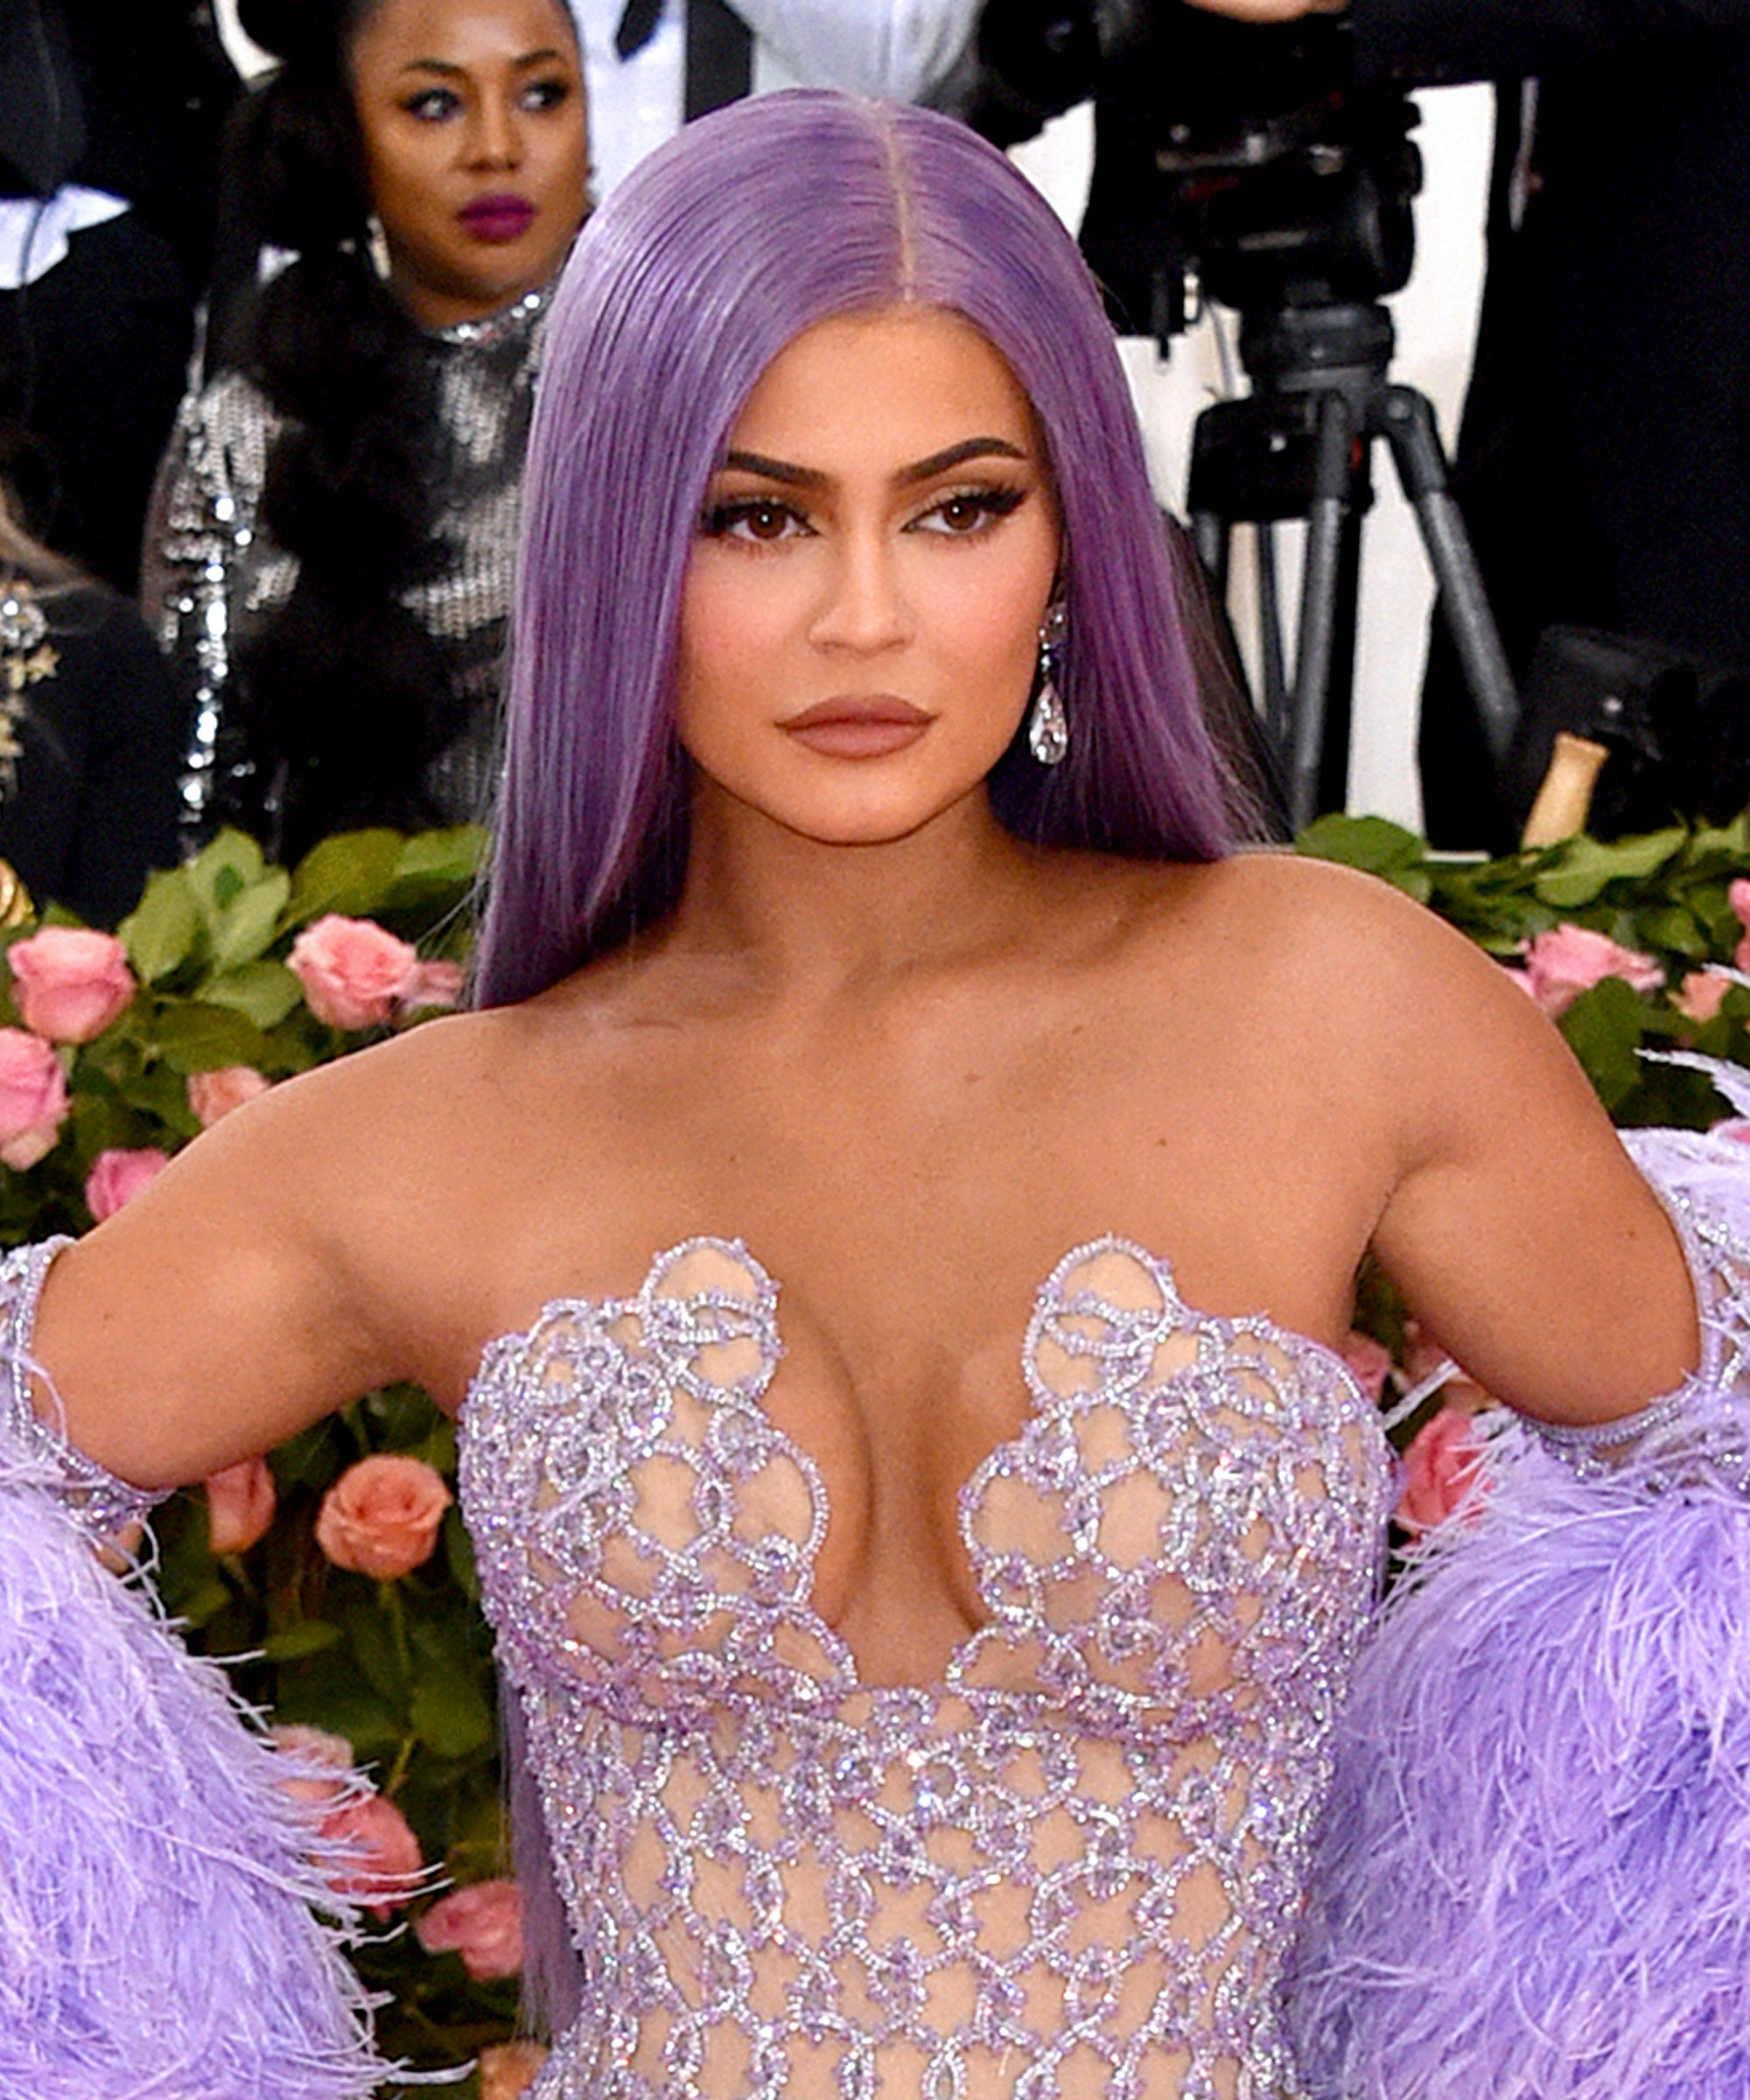 Kylie Jenner Reportedly Told Jordyn Woods To Get Her Stuff & Clear Out Of The House